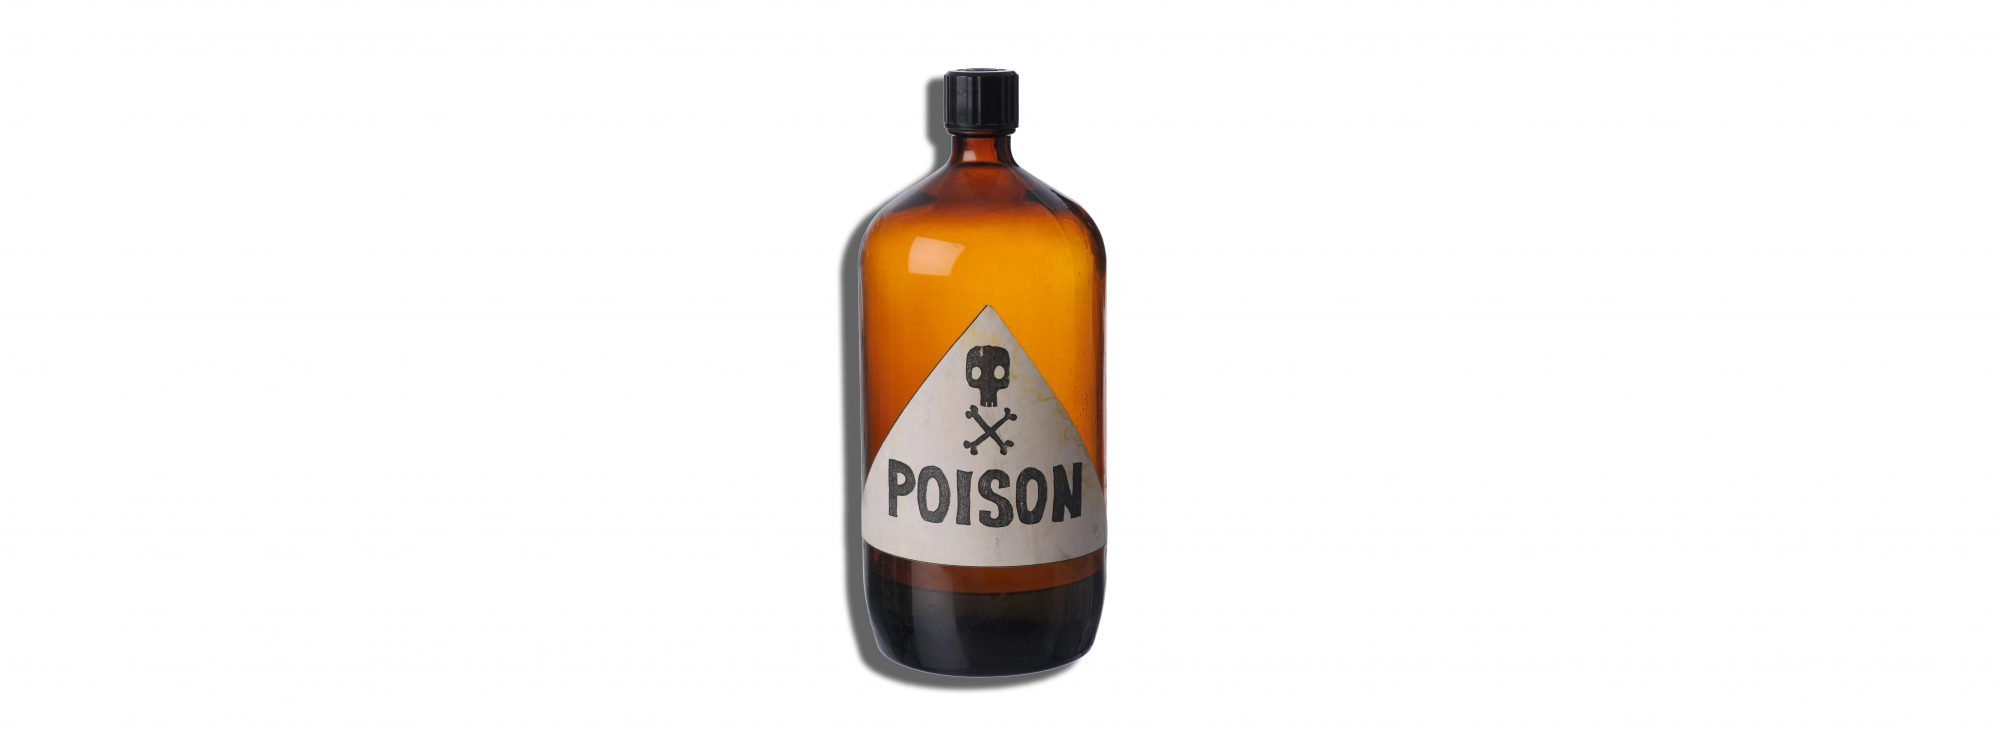 Poison Bottle Generic Getty Images Drinking High Concentration Hydrogen Peroxide